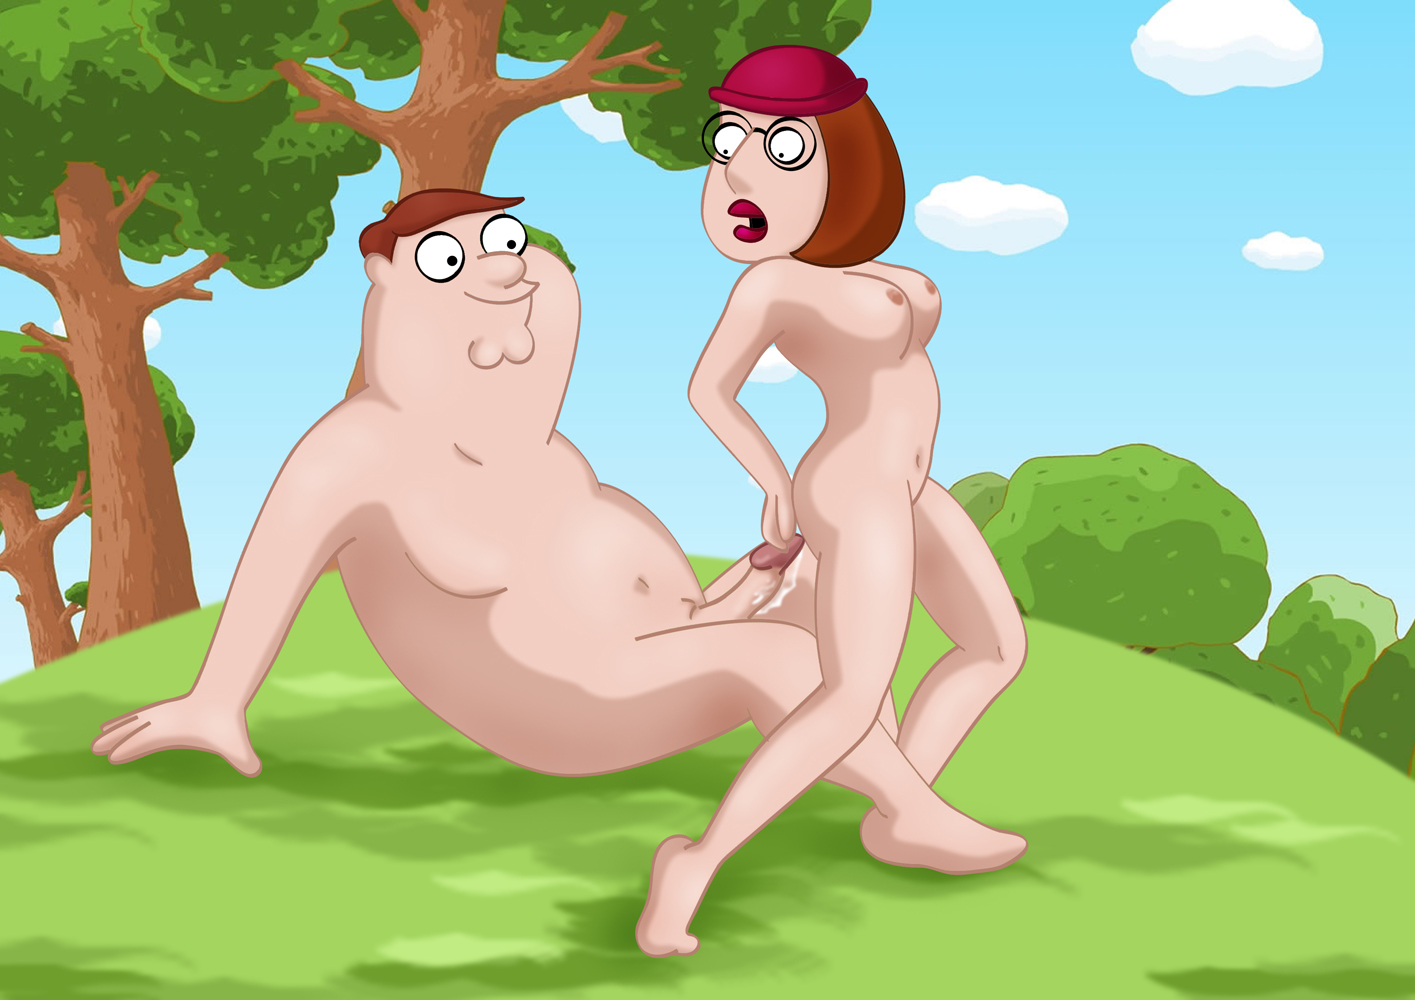 Charming message family guy having beach sex